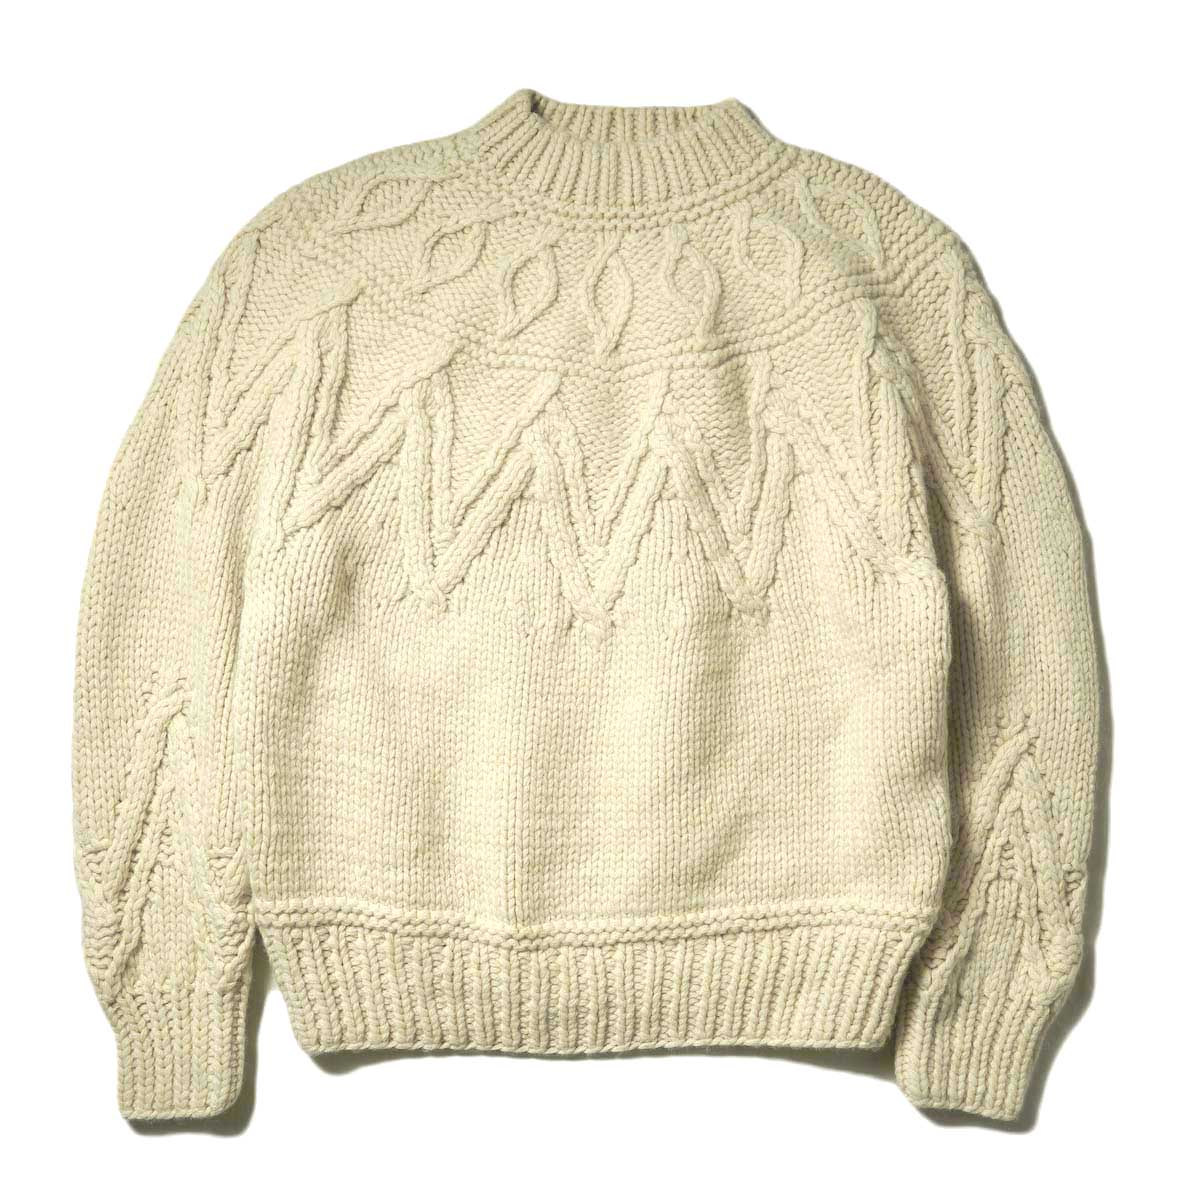 blurhms / Hand-knitted Solid Color Nordic Sweater (Ivory)